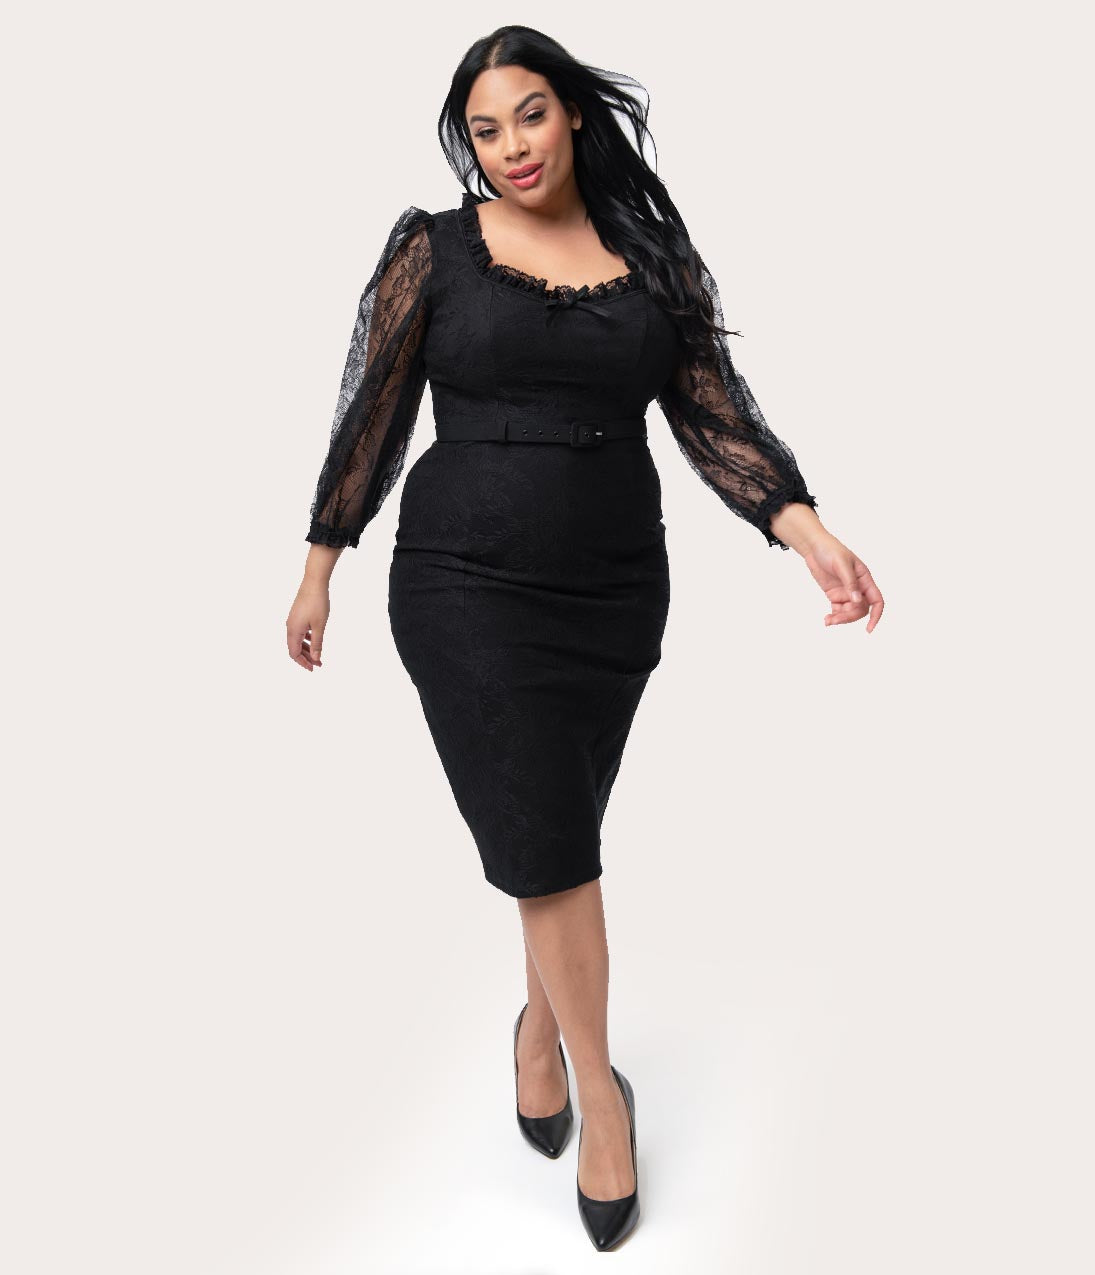 1950s Plus Size Dresses, Clothing and Costumes Vixen By Micheline Pitt Plus Size Black Lace Decadence Wiggle Dress $166.00 AT vintagedancer.com